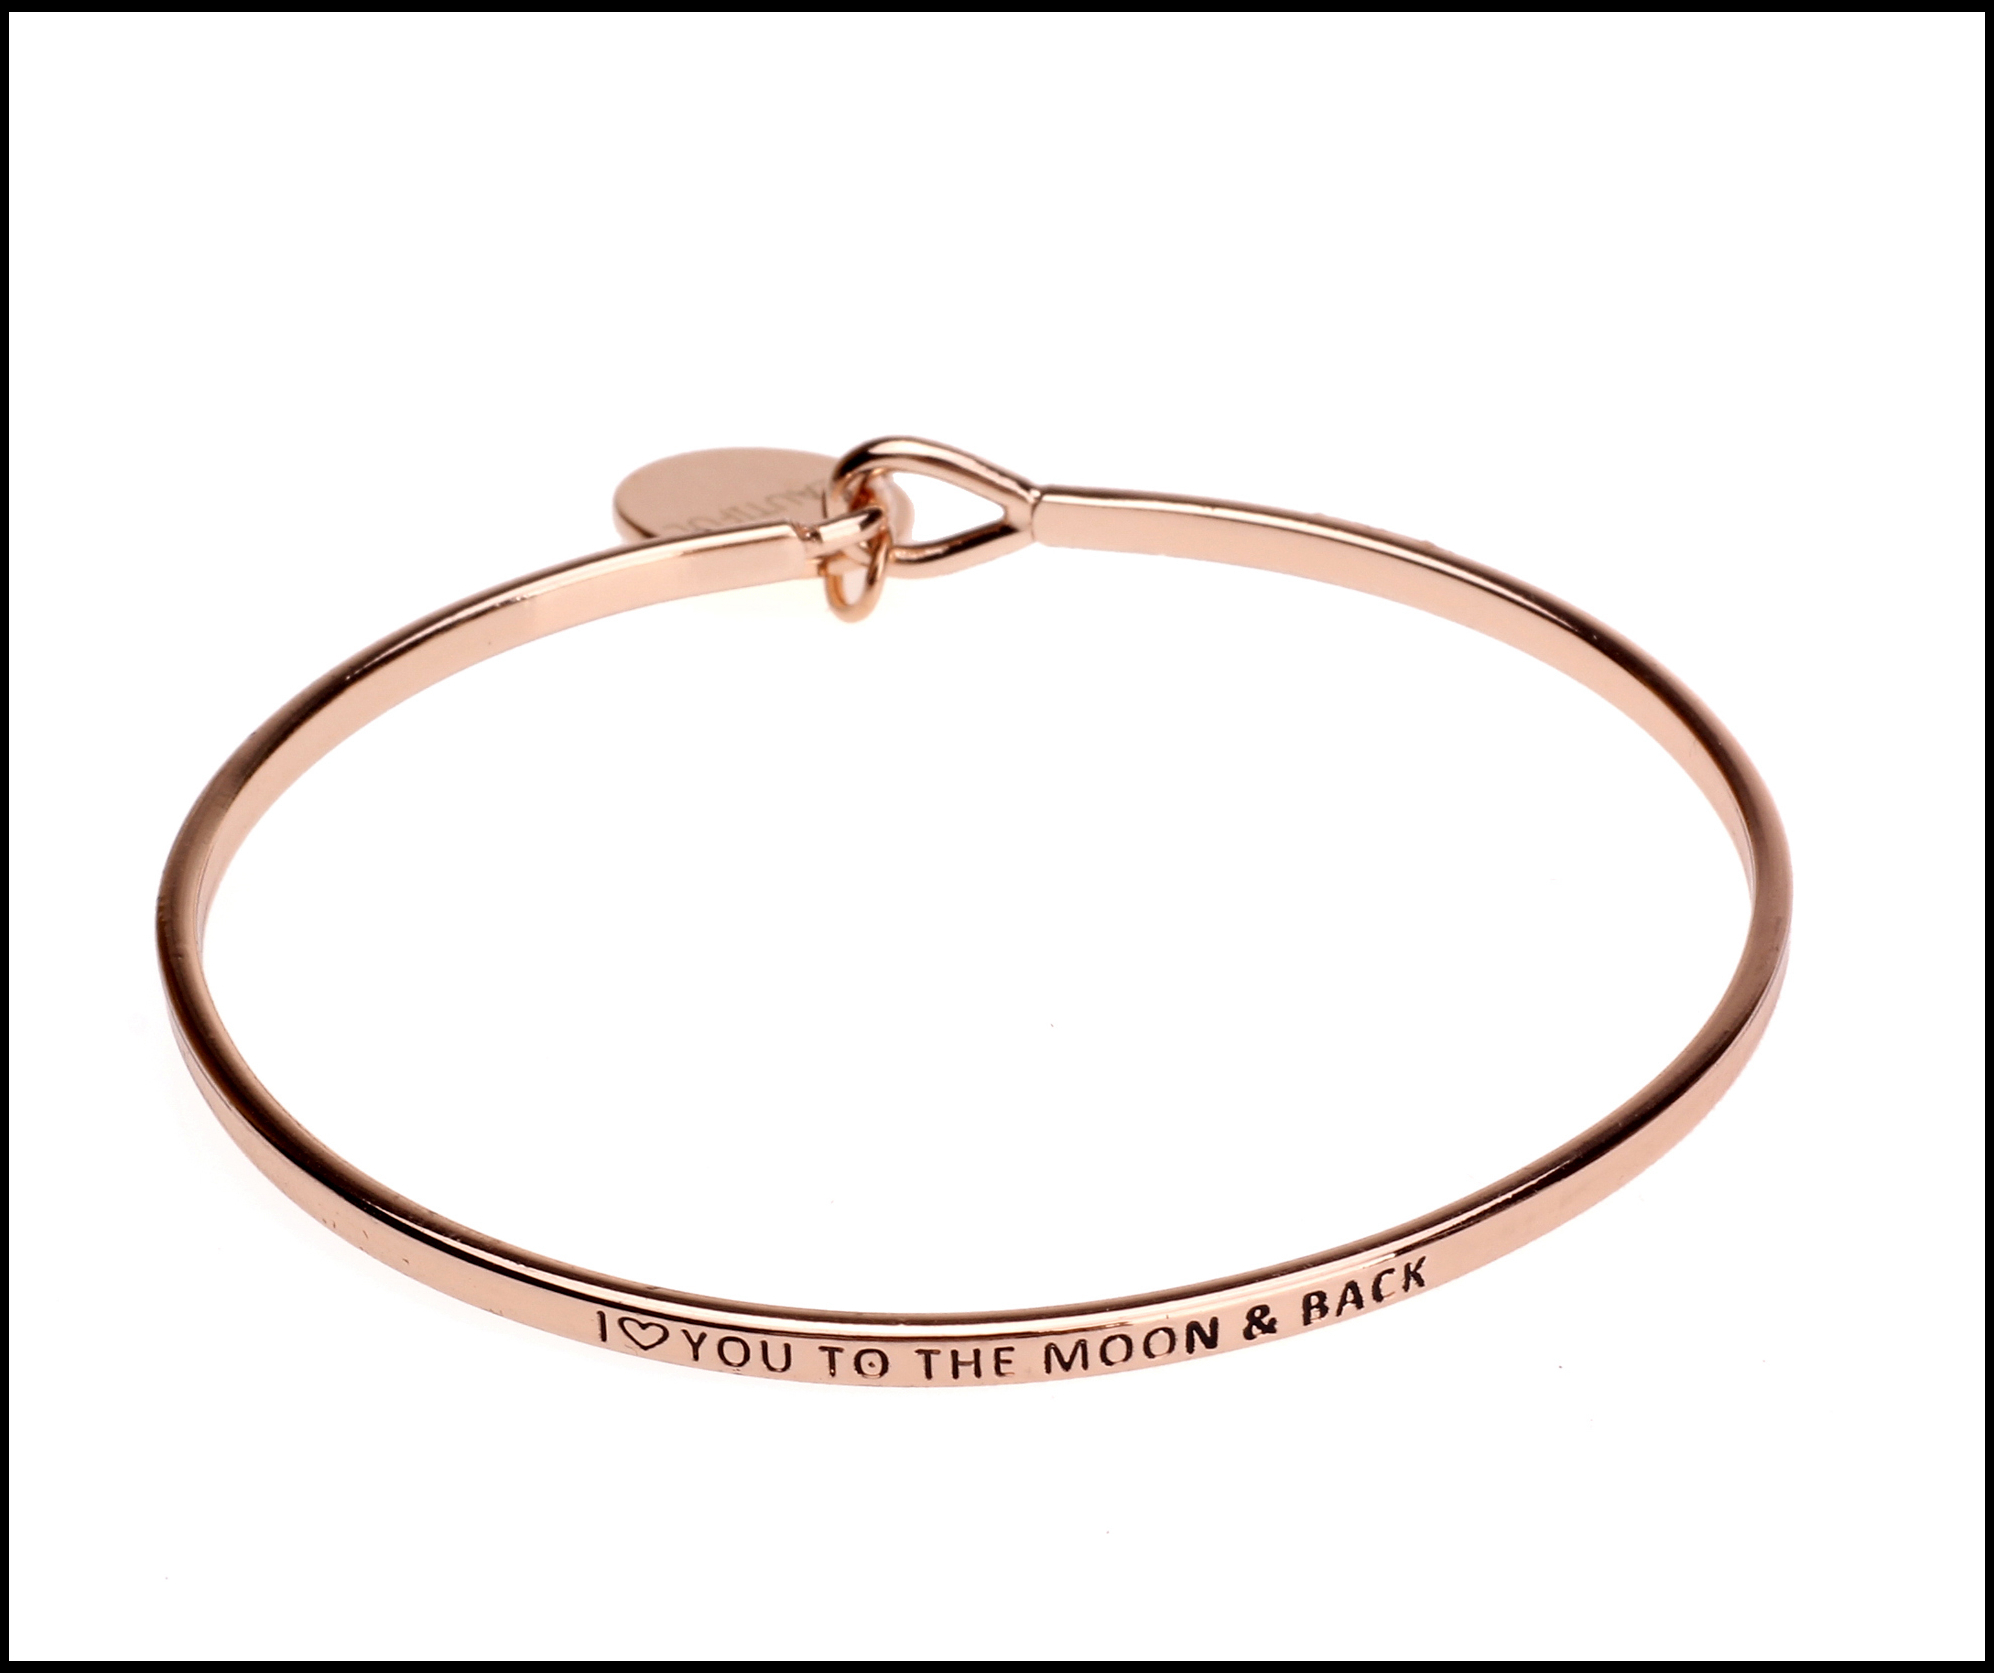 moon and back rose gold bangle